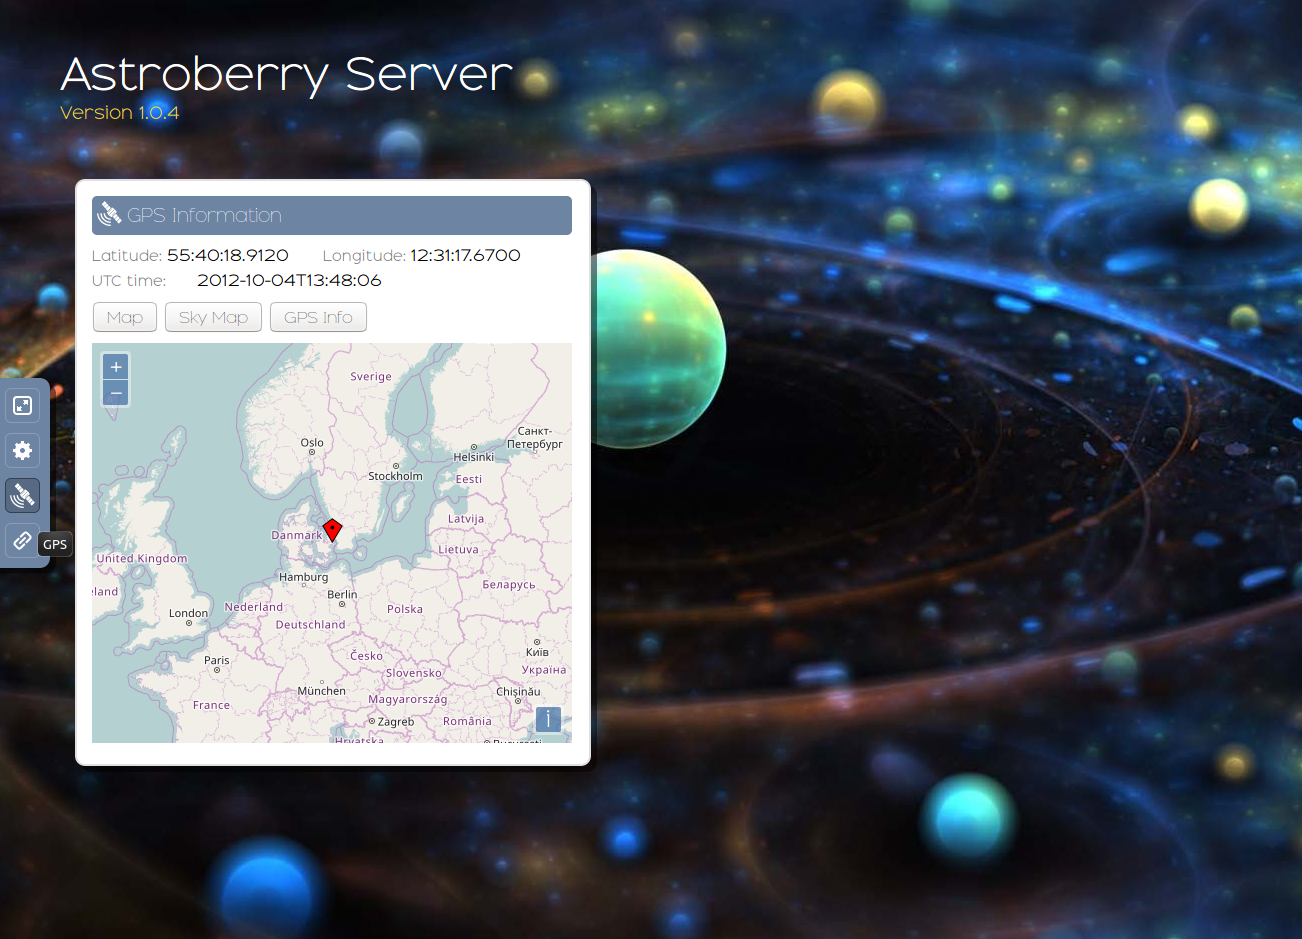 Astroberry Server - Page 4 - INDI Forum - Results from #144